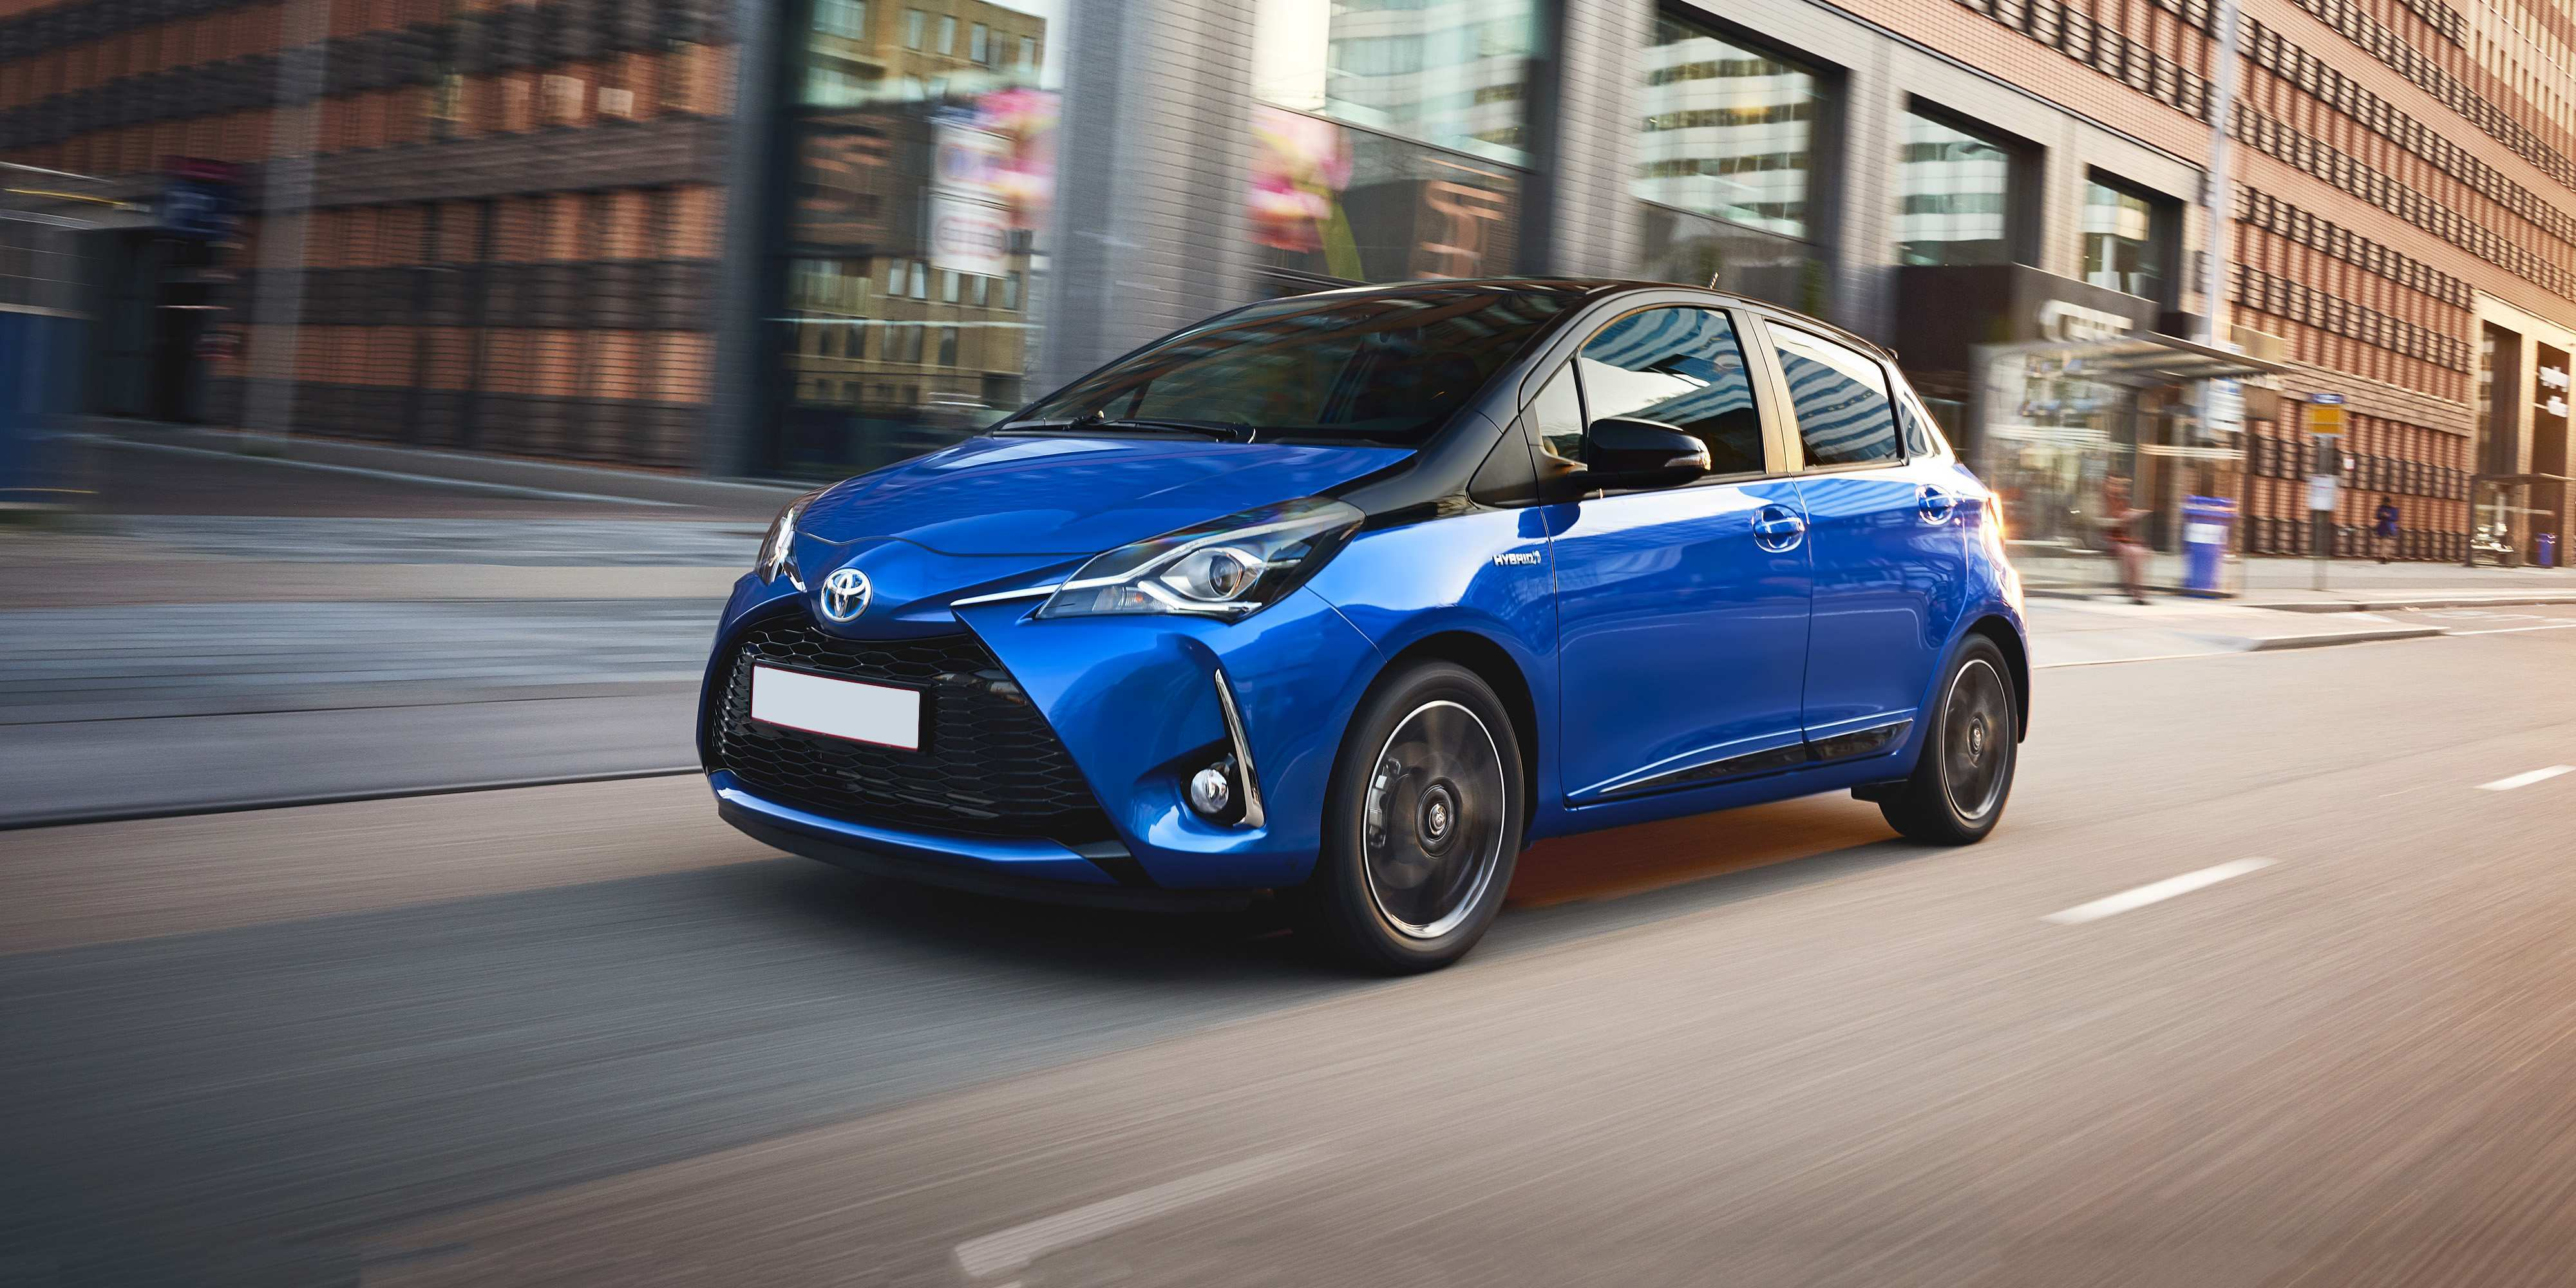 25 All New Best Yaris Toyota 2019 Precio Price And Review Spesification with Best Yaris Toyota 2019 Precio Price And Review